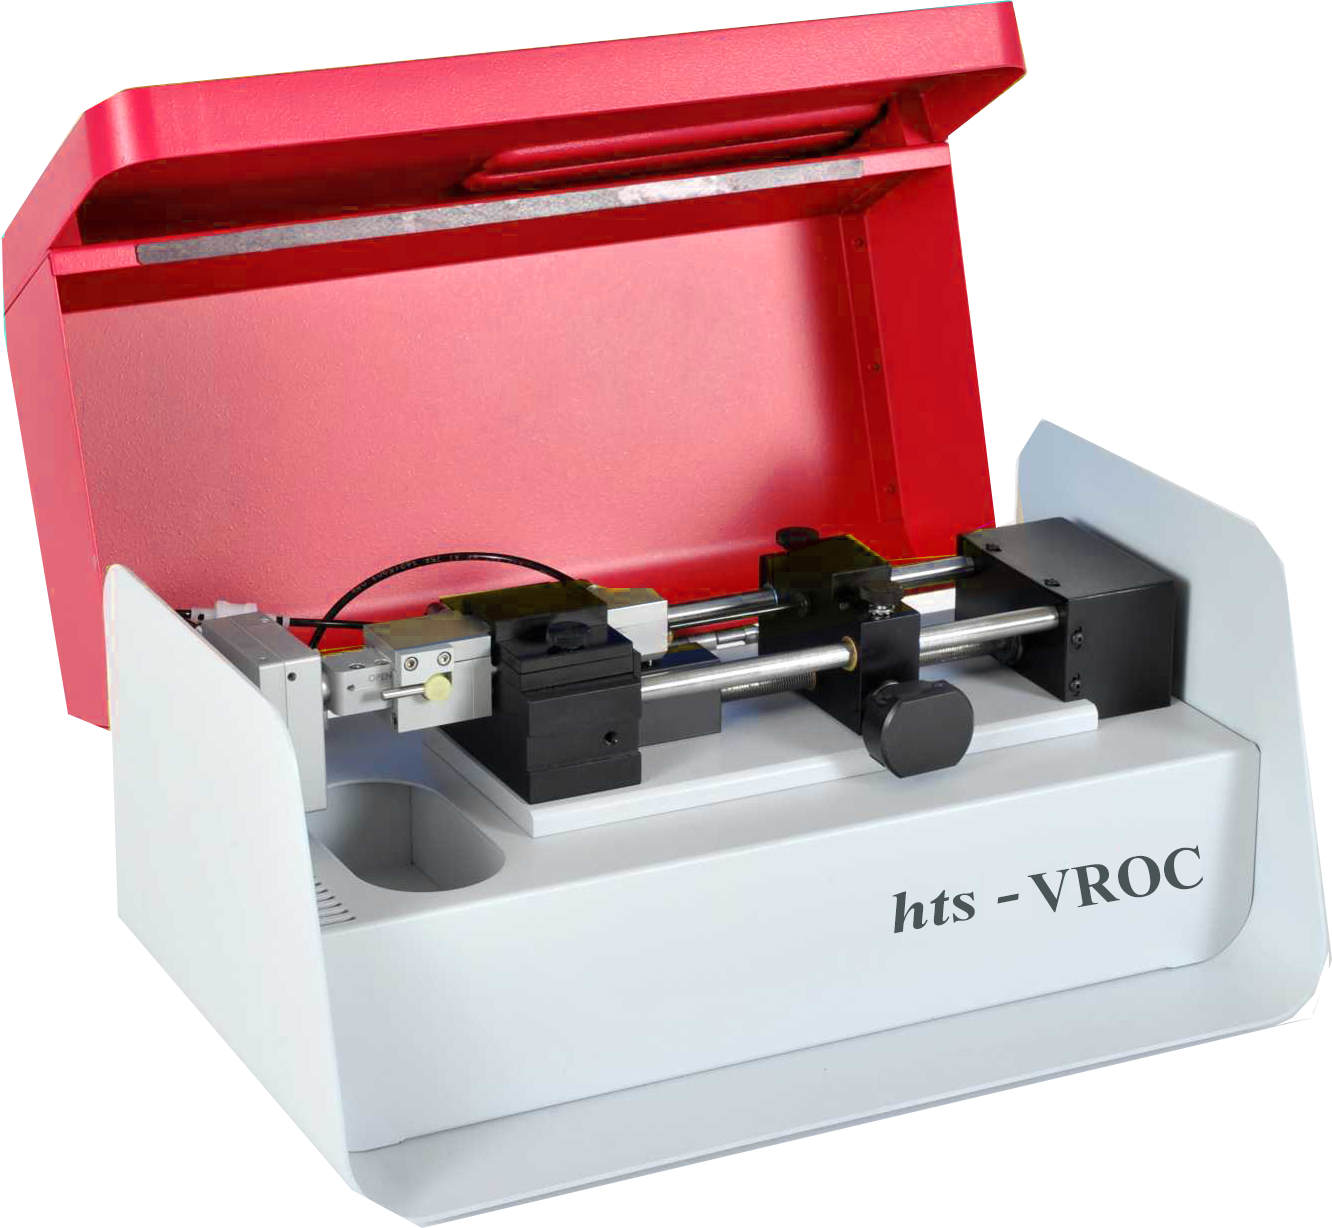 High Temperature Viscometer, hts-VROC